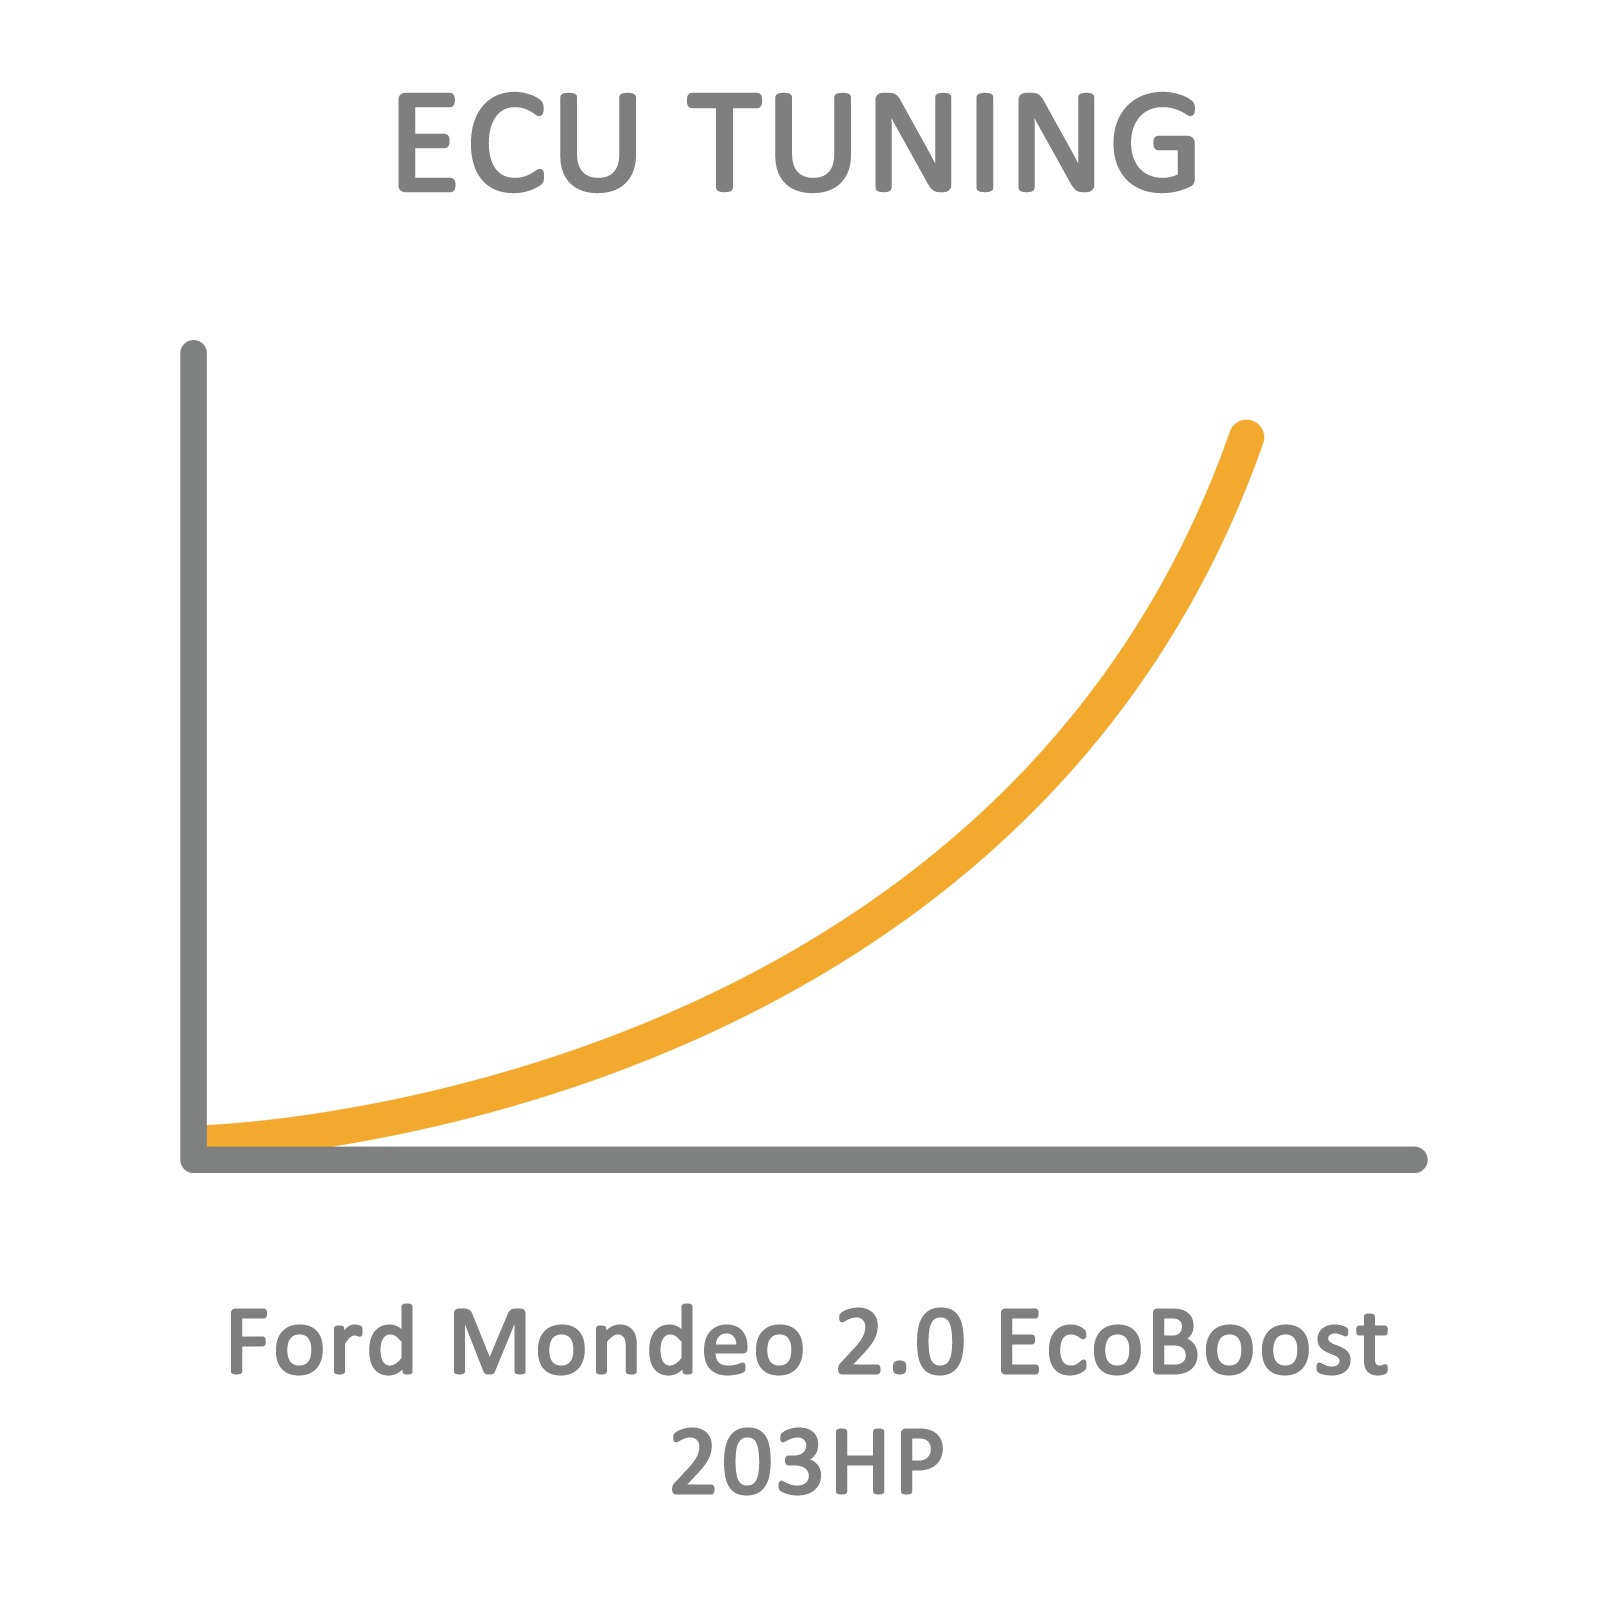 Ford Mondeo 2.0 EcoBoost 203HP ECU Tuning Remapping